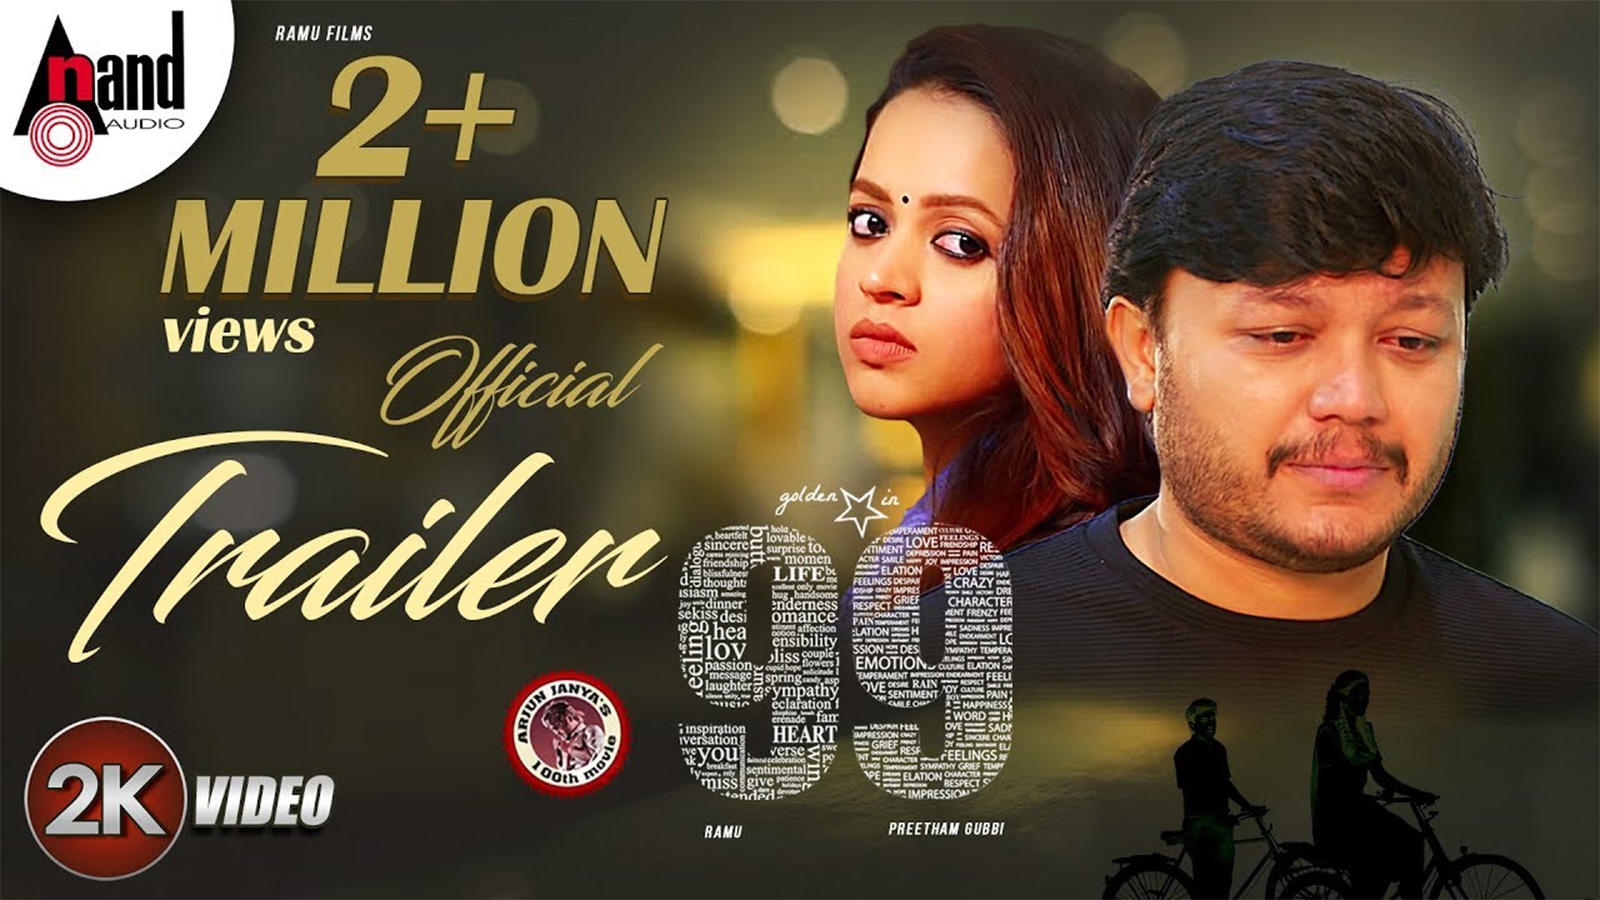 99 - Official Trailer | Kannada Movie News - Times of India